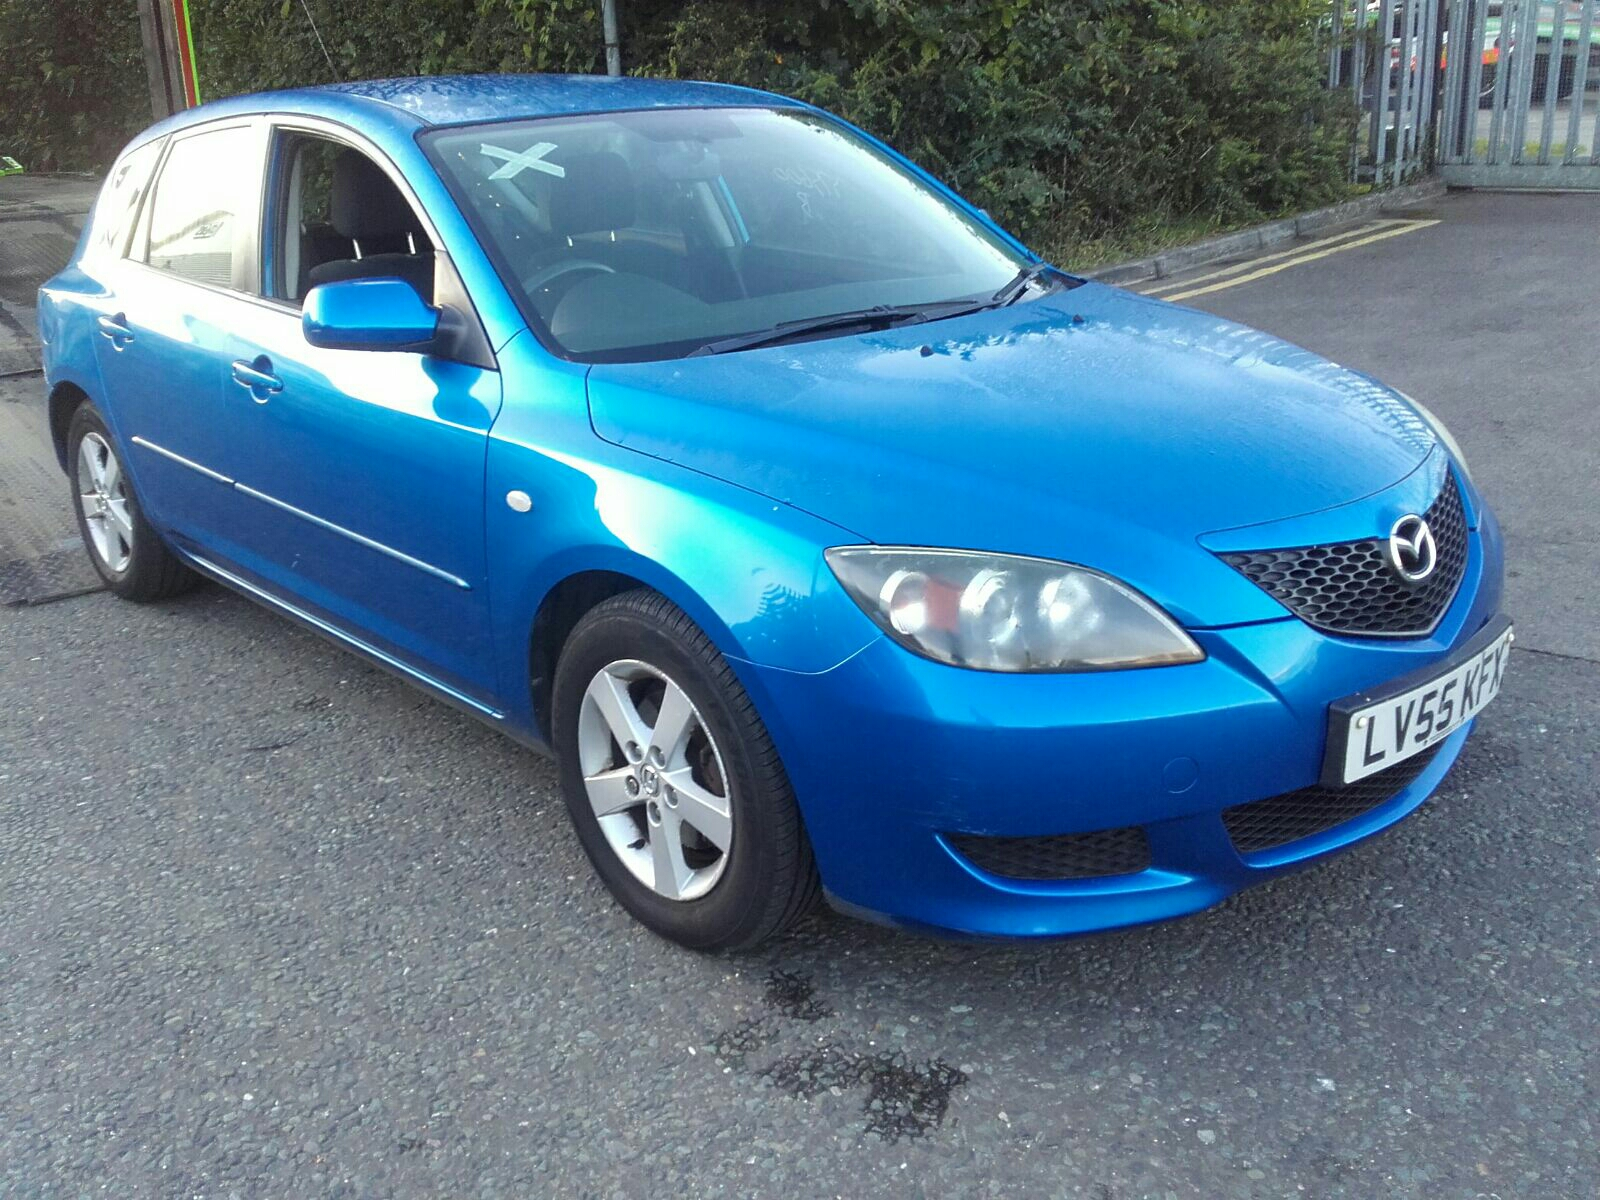 Mazda 3 2004 To 2008 TS 5 Door Hatchback